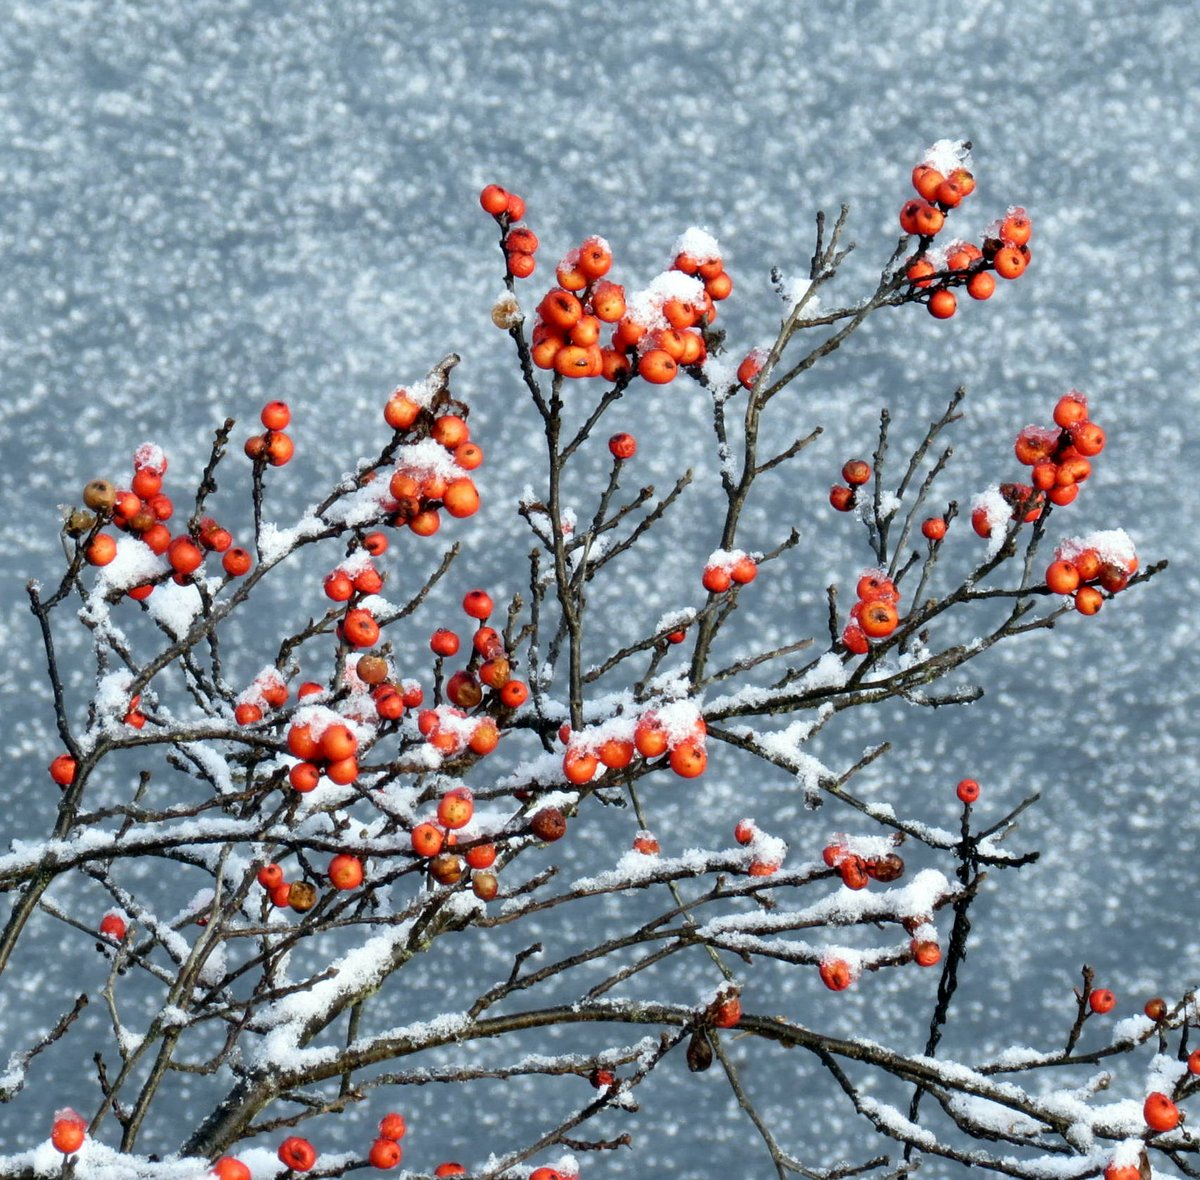 5. Winterberries